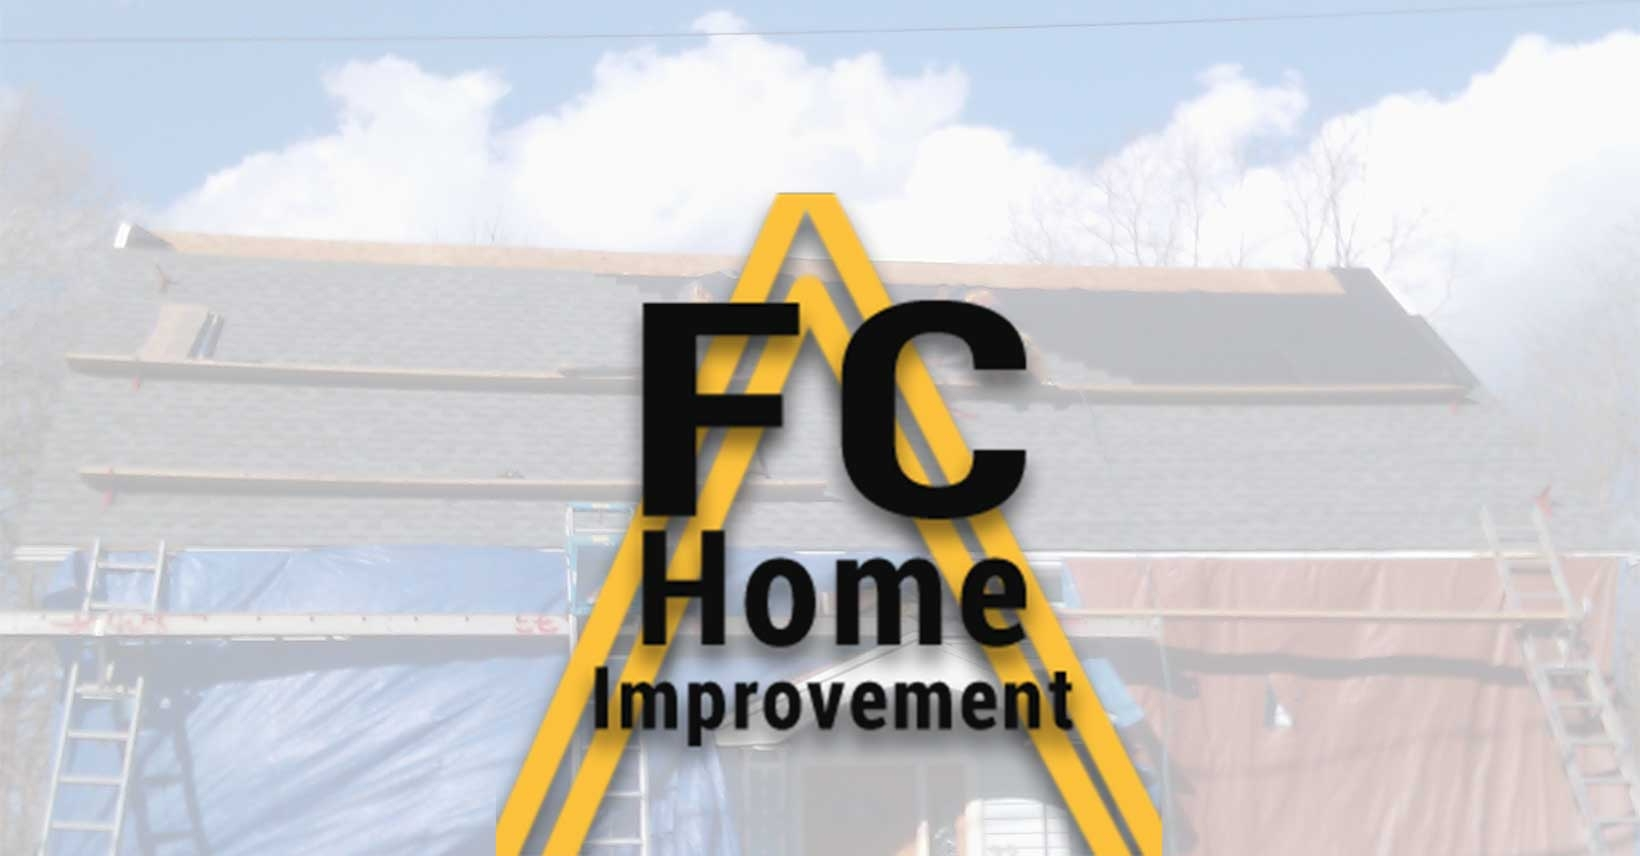 FC Home Improvement  (@intoroofing) Cover Image